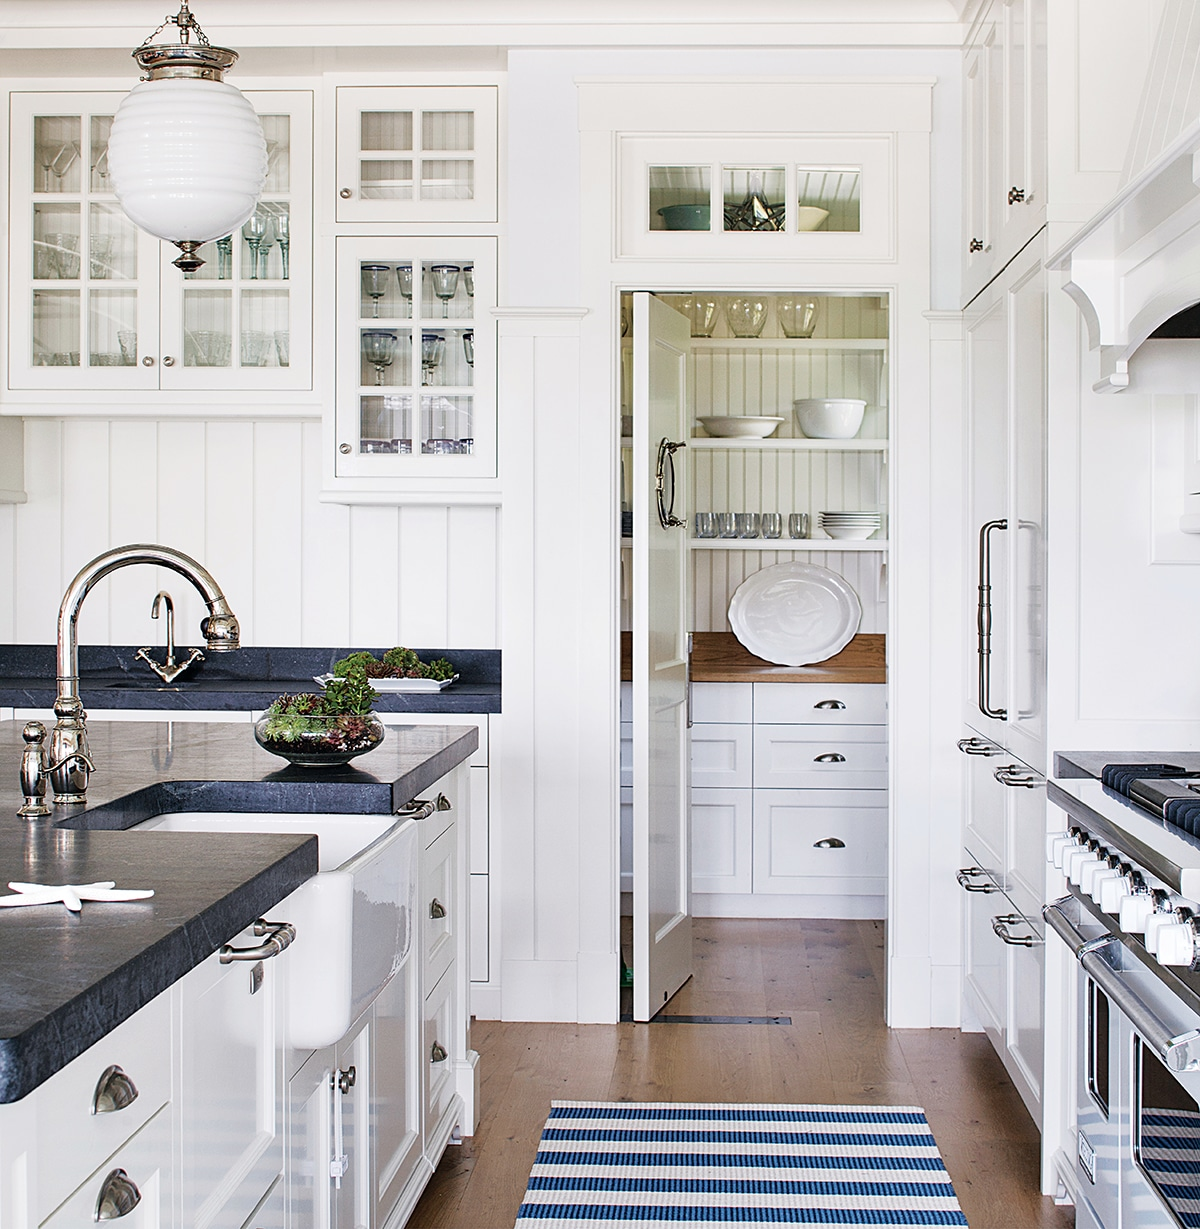 Kitchen With Living Room Design: Where Do You Store Your Dishes?